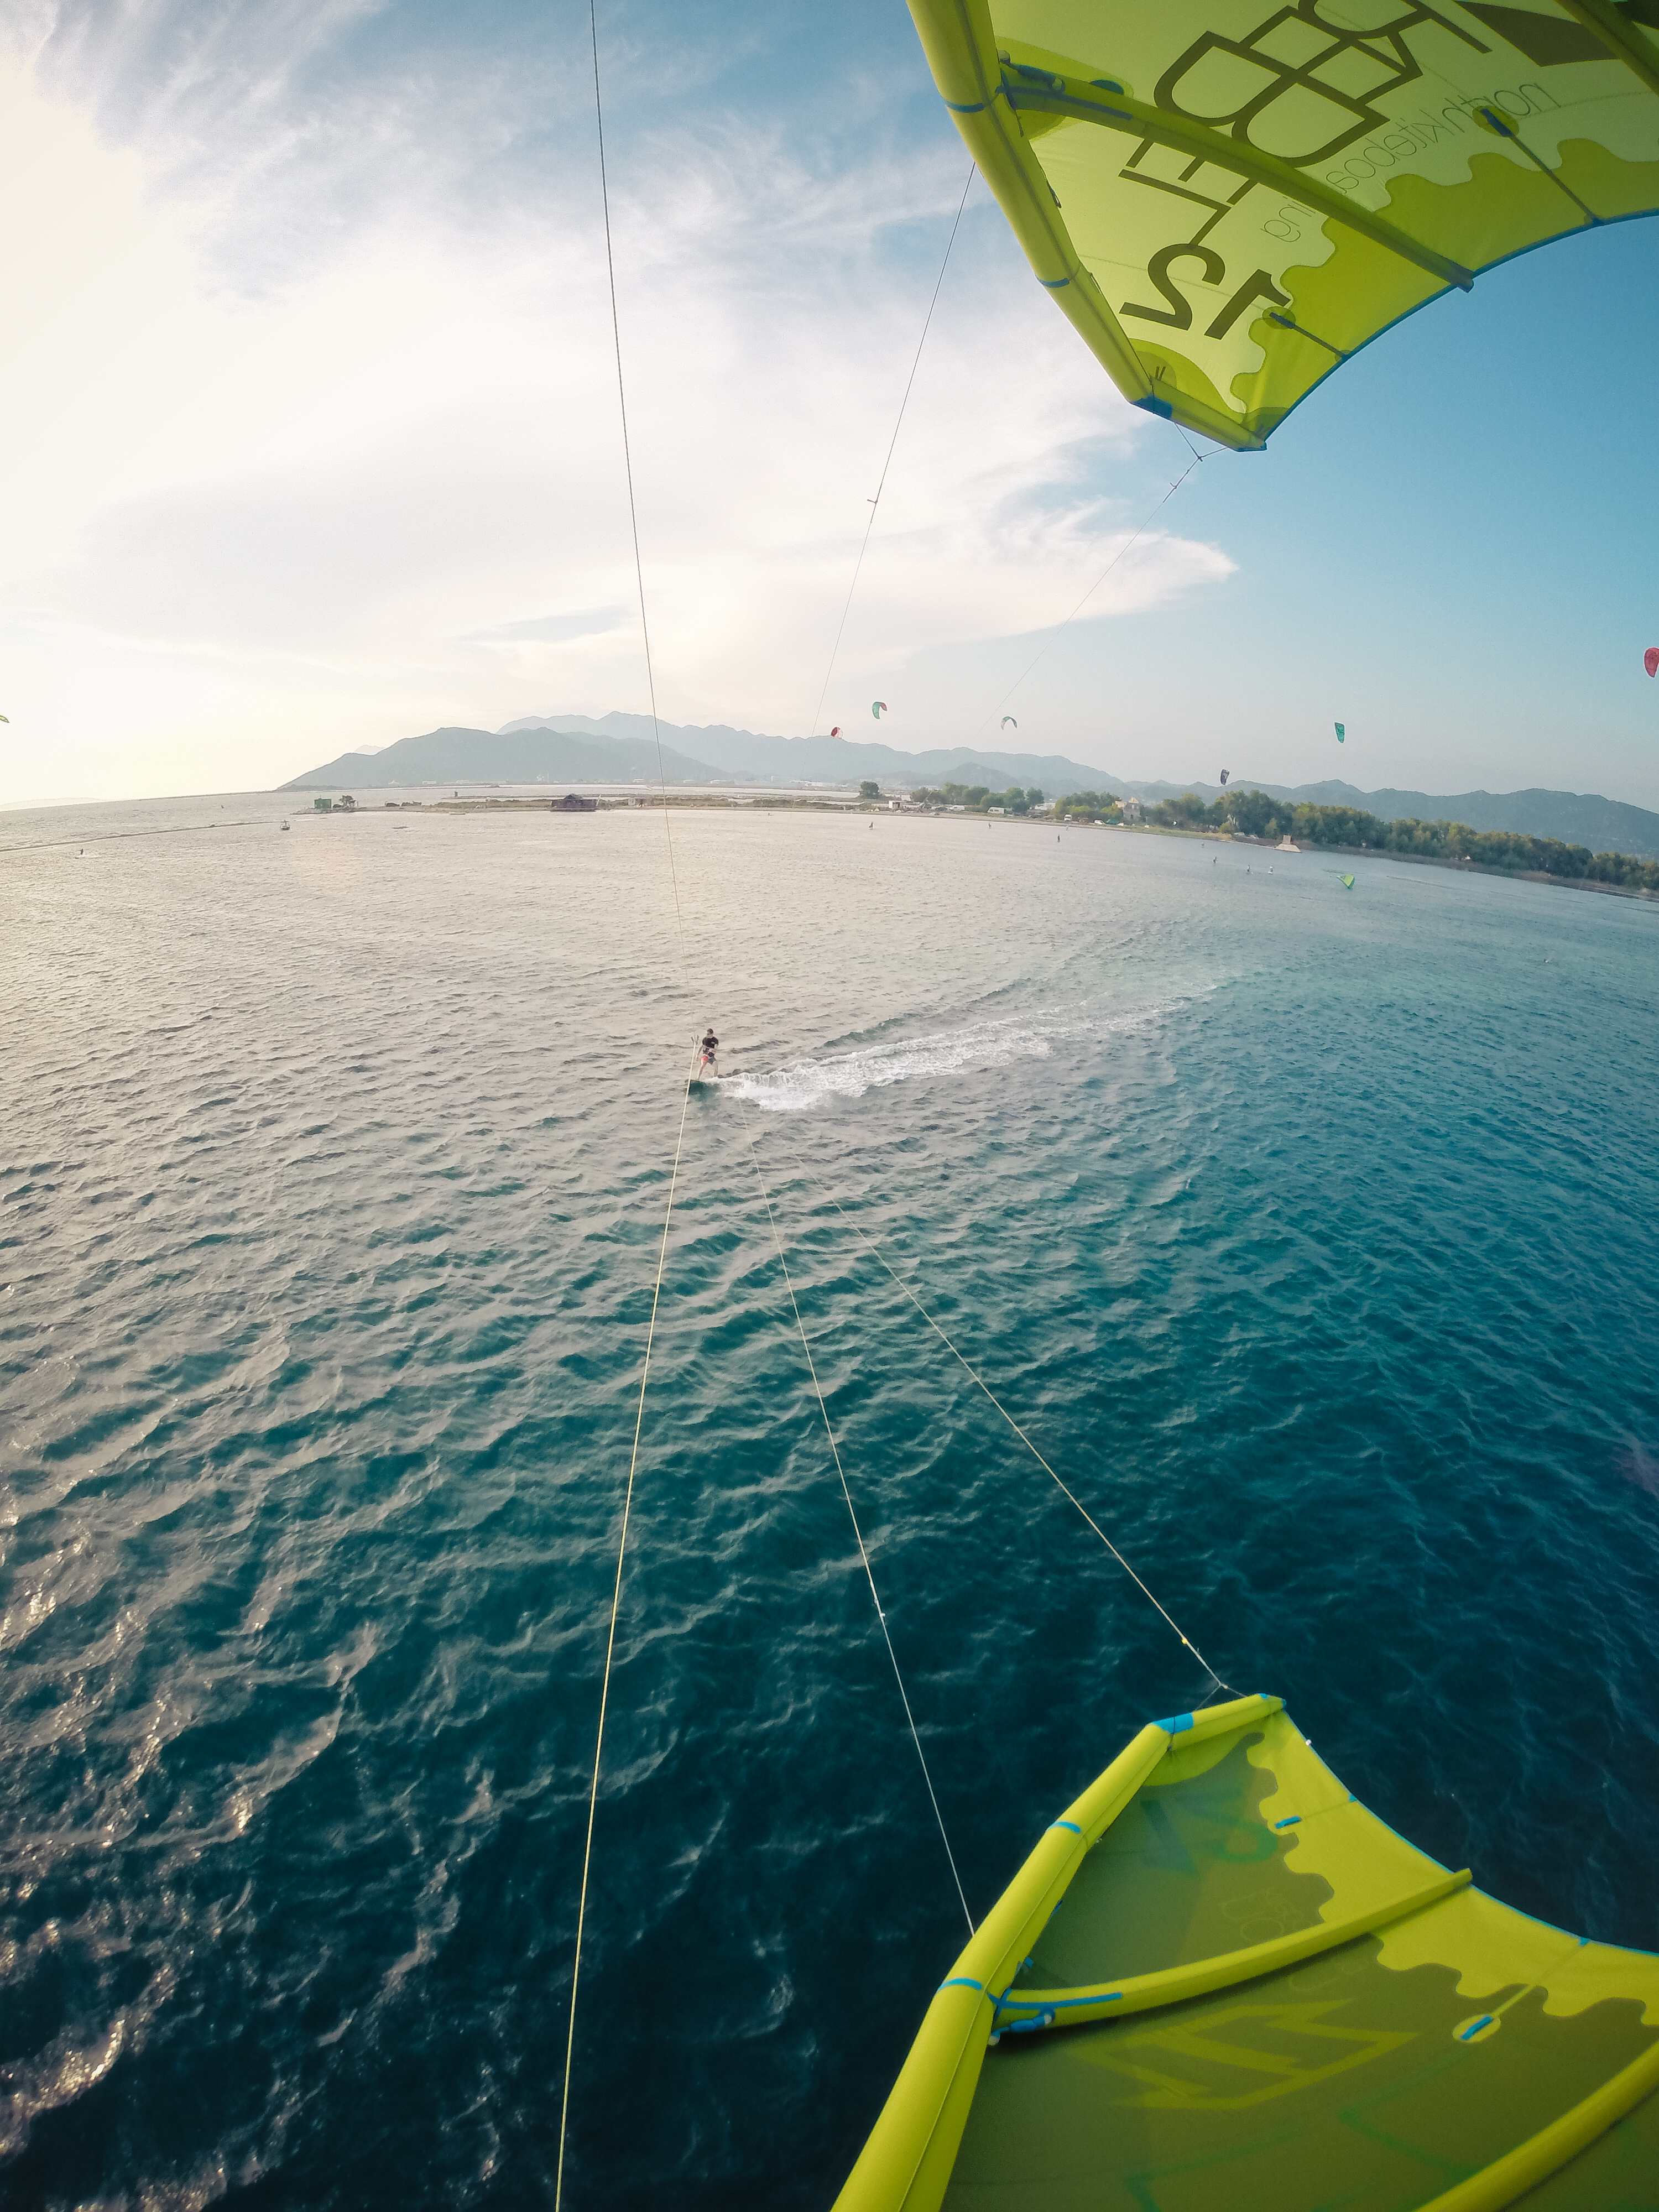 Croatia-kite-3.jpg